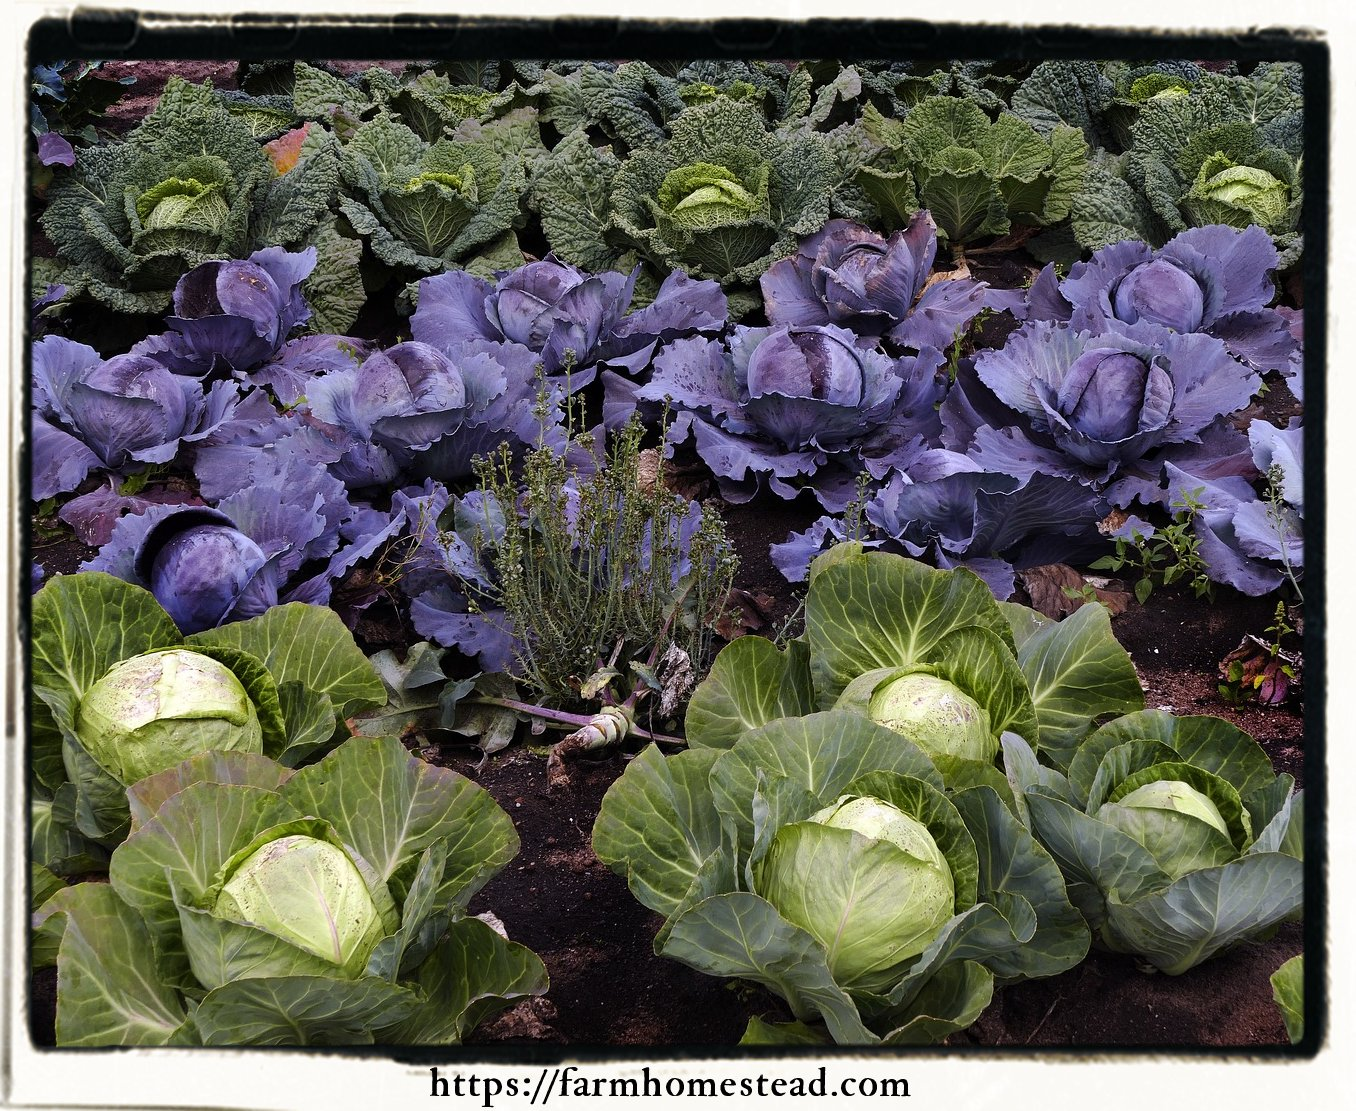 varieties of cabbages